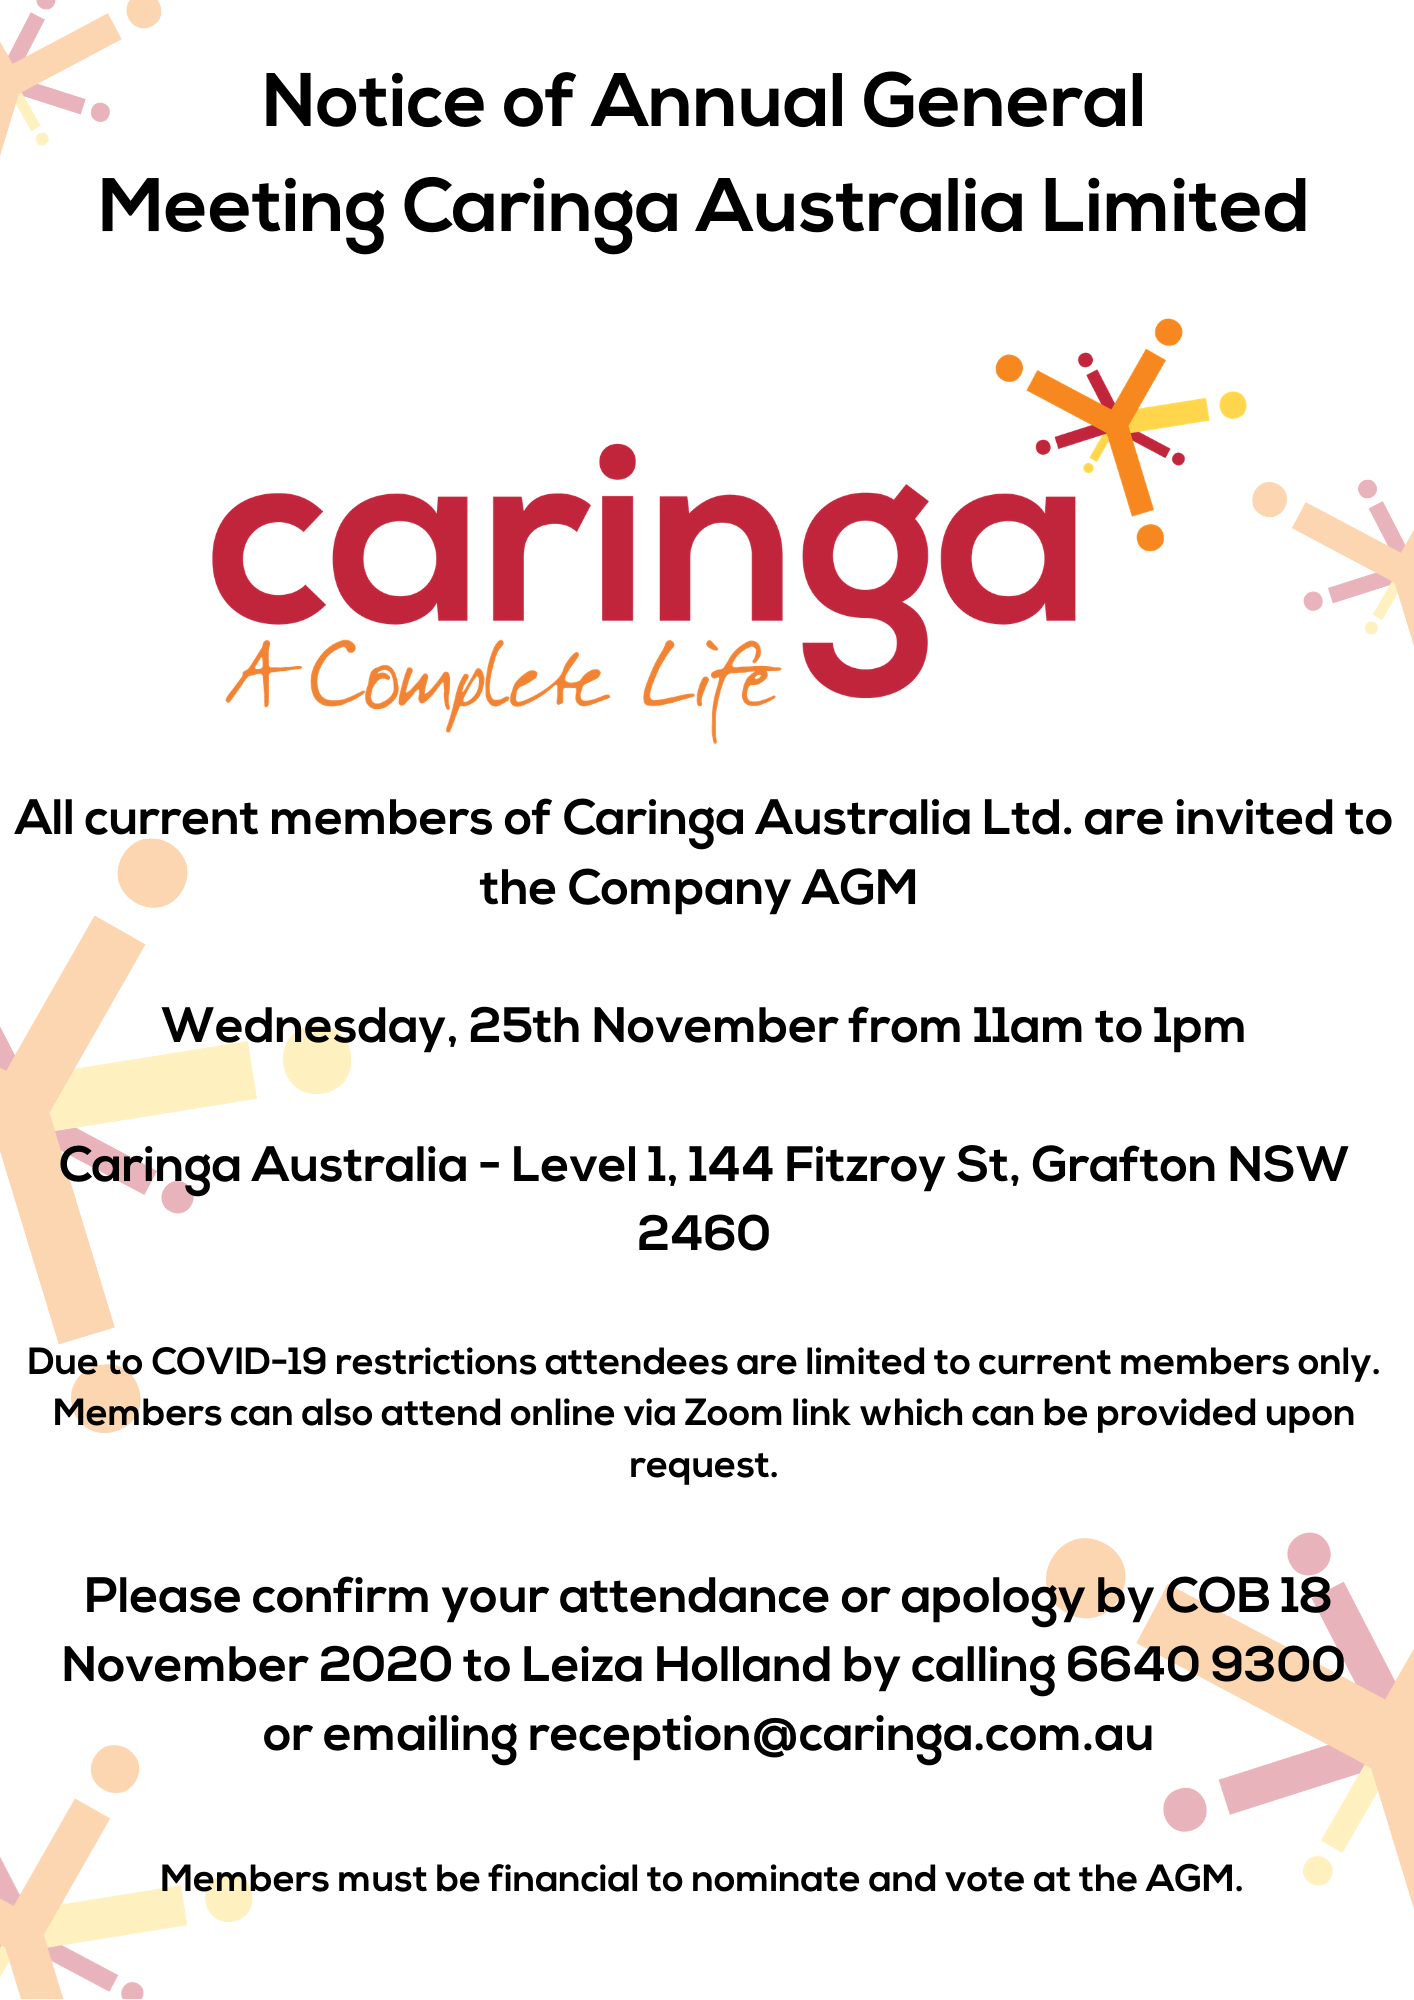 Caringa Australia Limited Notice of Annual General Meeting 2020